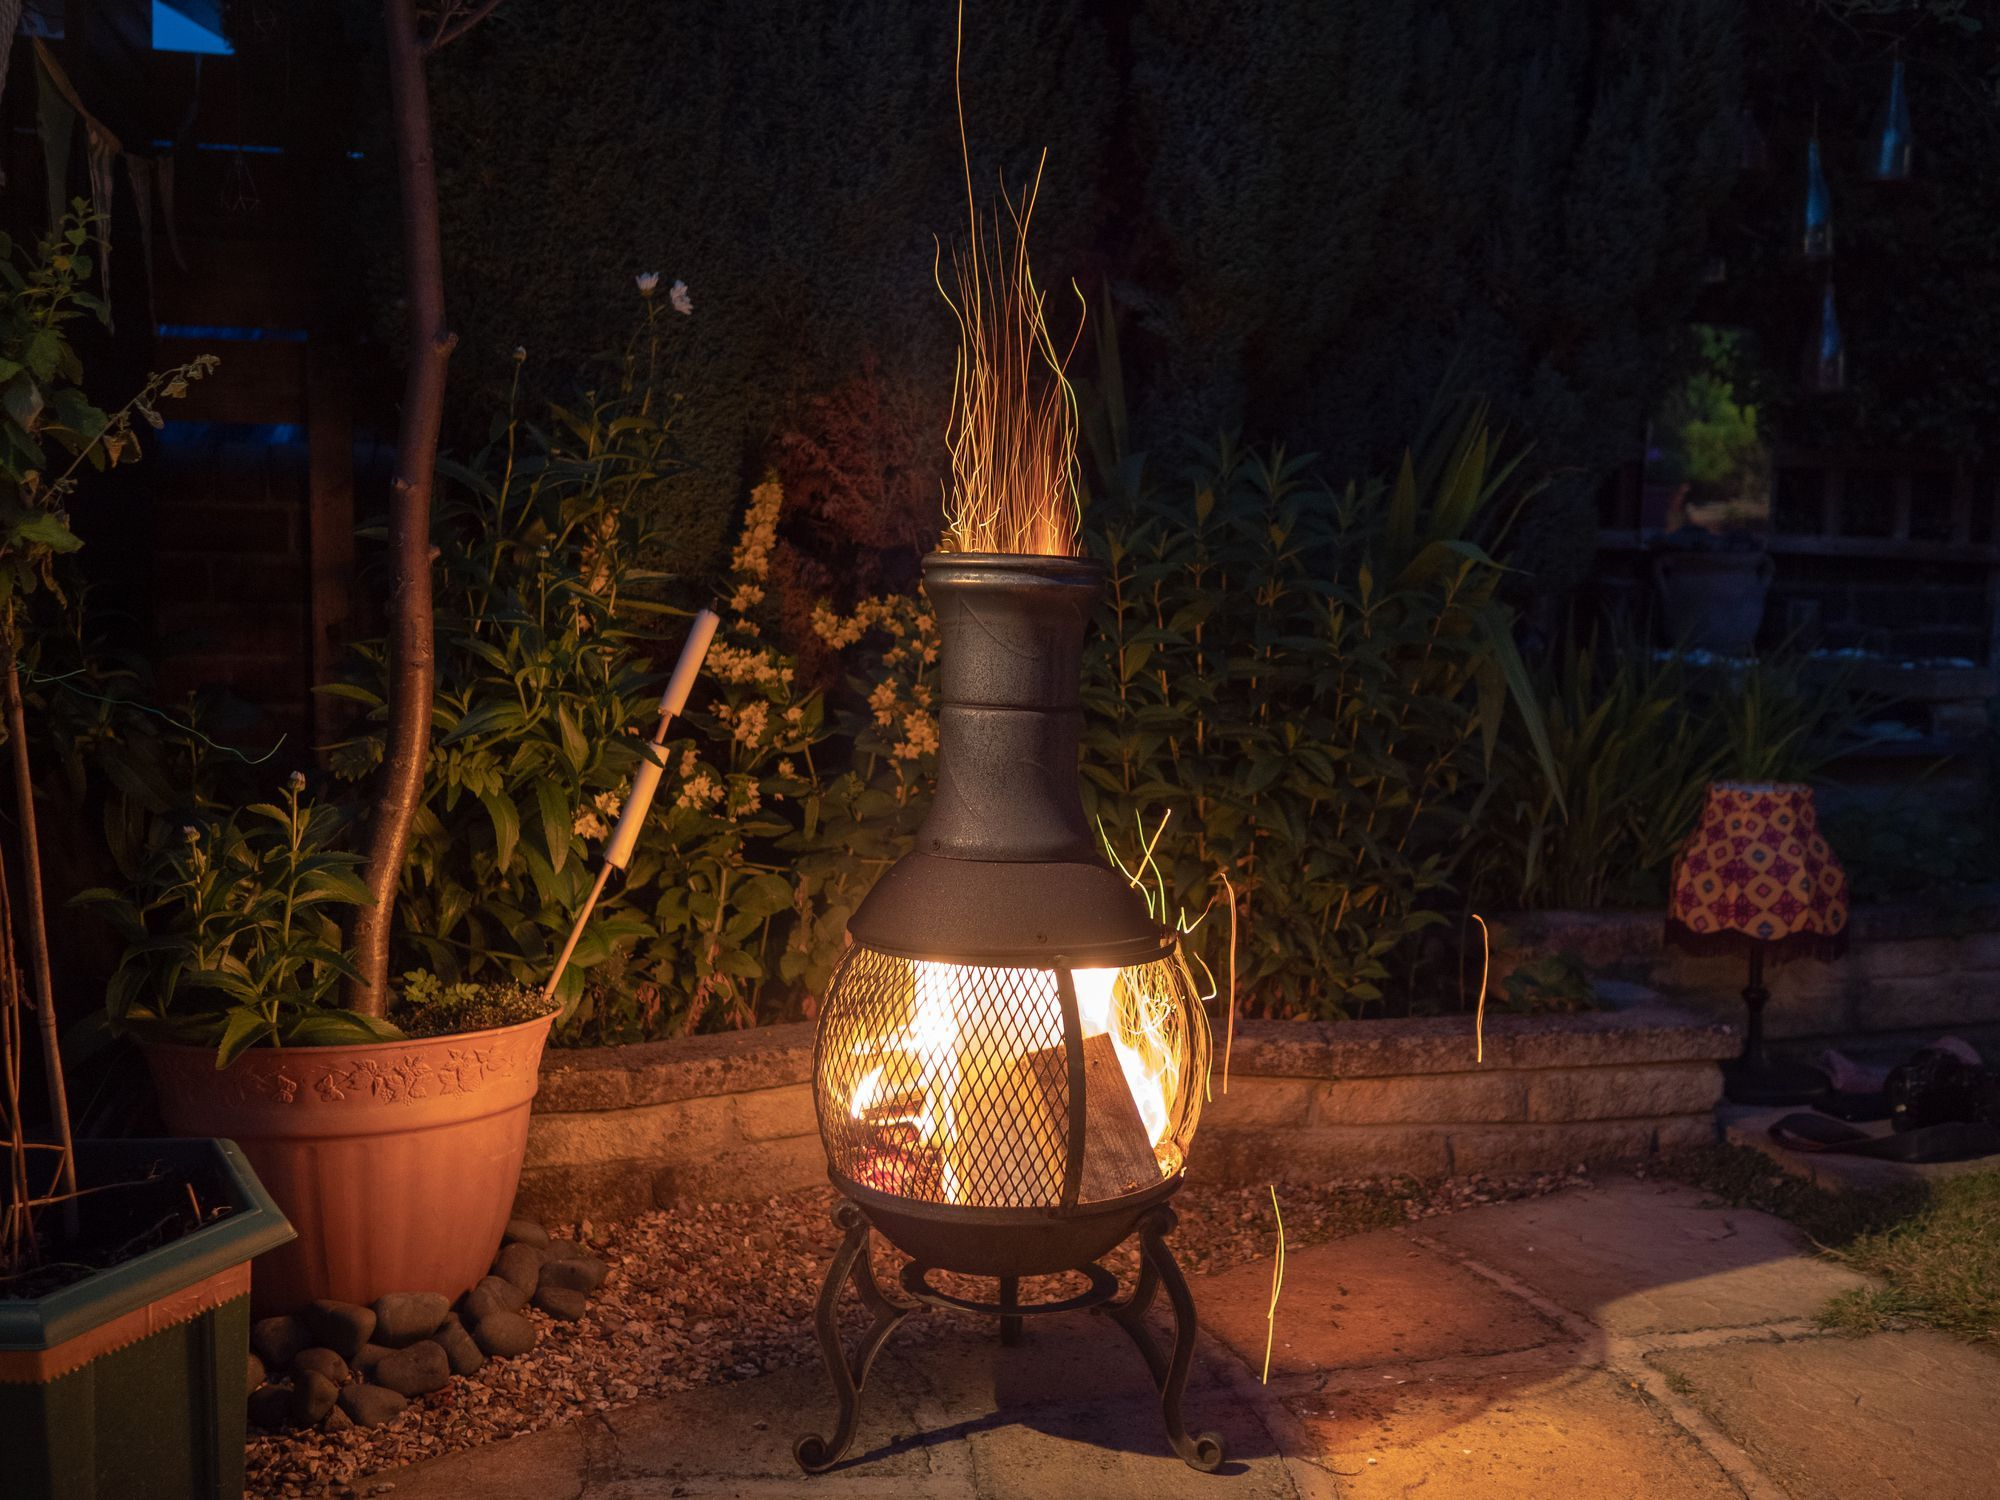 The 7 Best Chimineas Of 2020 In 2020 Chiminea Best Patio Heaters Fire Pit